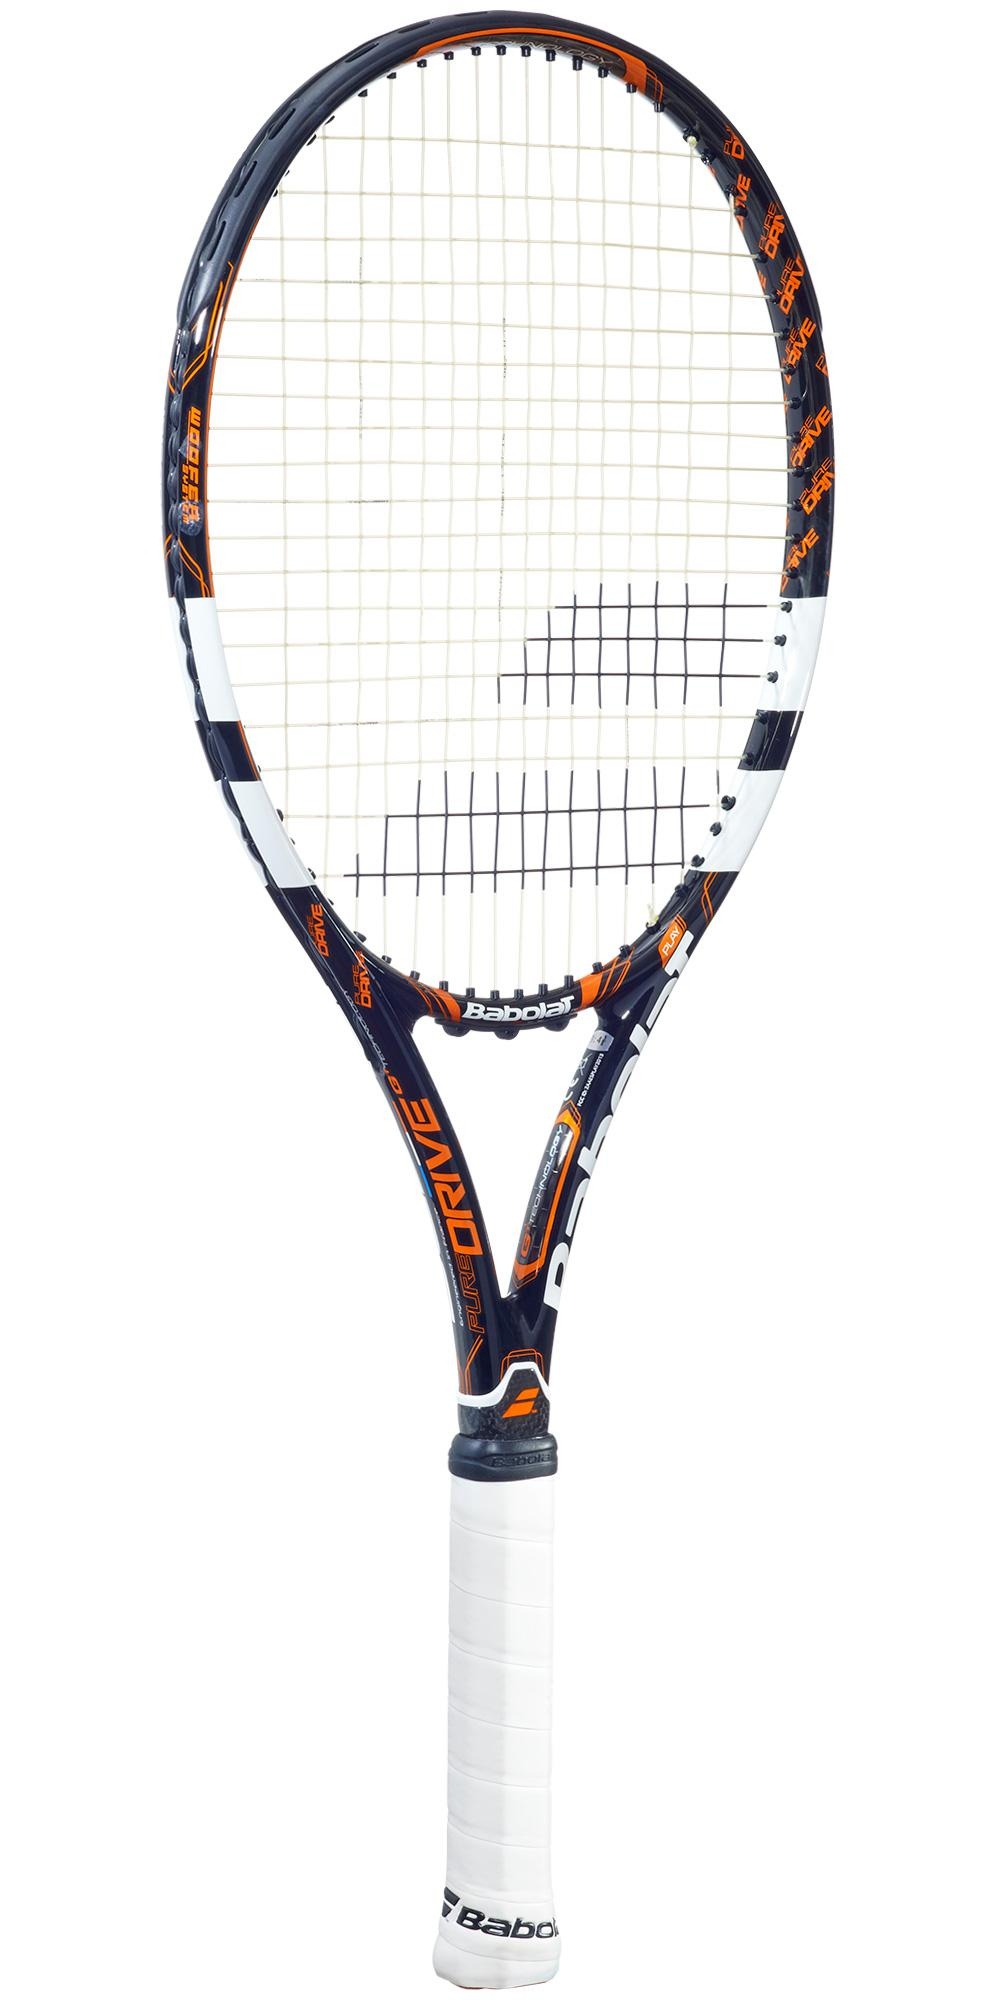 babolat play pure drive tennis racket 2014. Black Bedroom Furniture Sets. Home Design Ideas